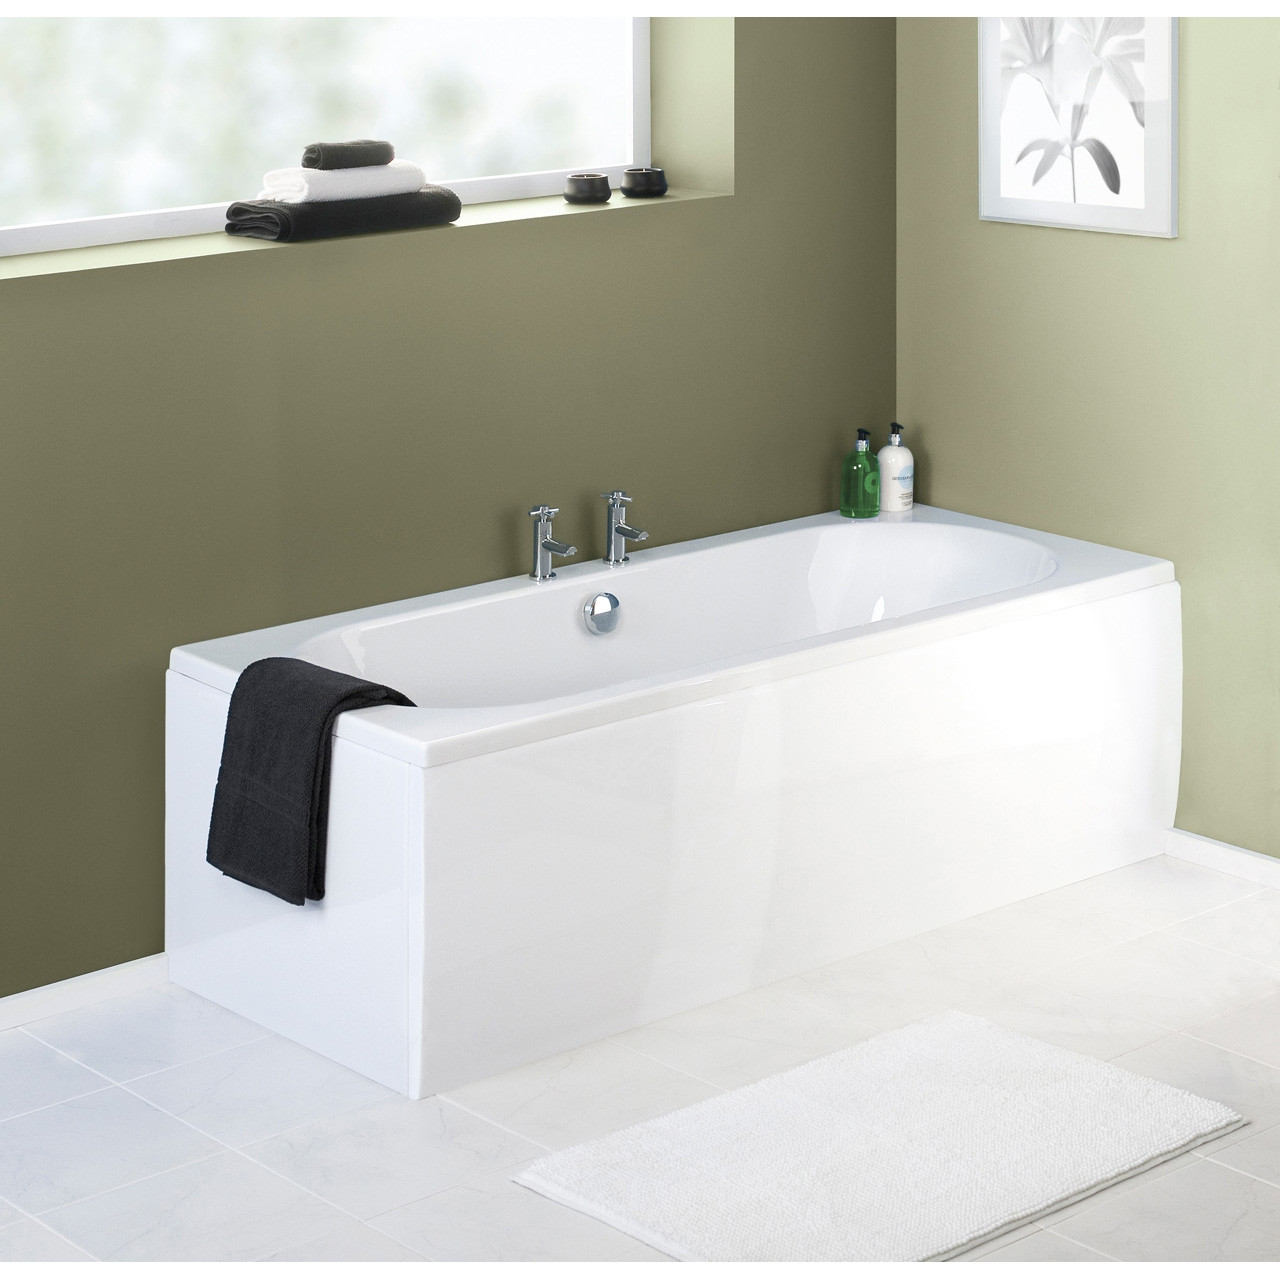 Premier Straight Front Bath Panel 1800mm x 510mm x 2mm - PAN141